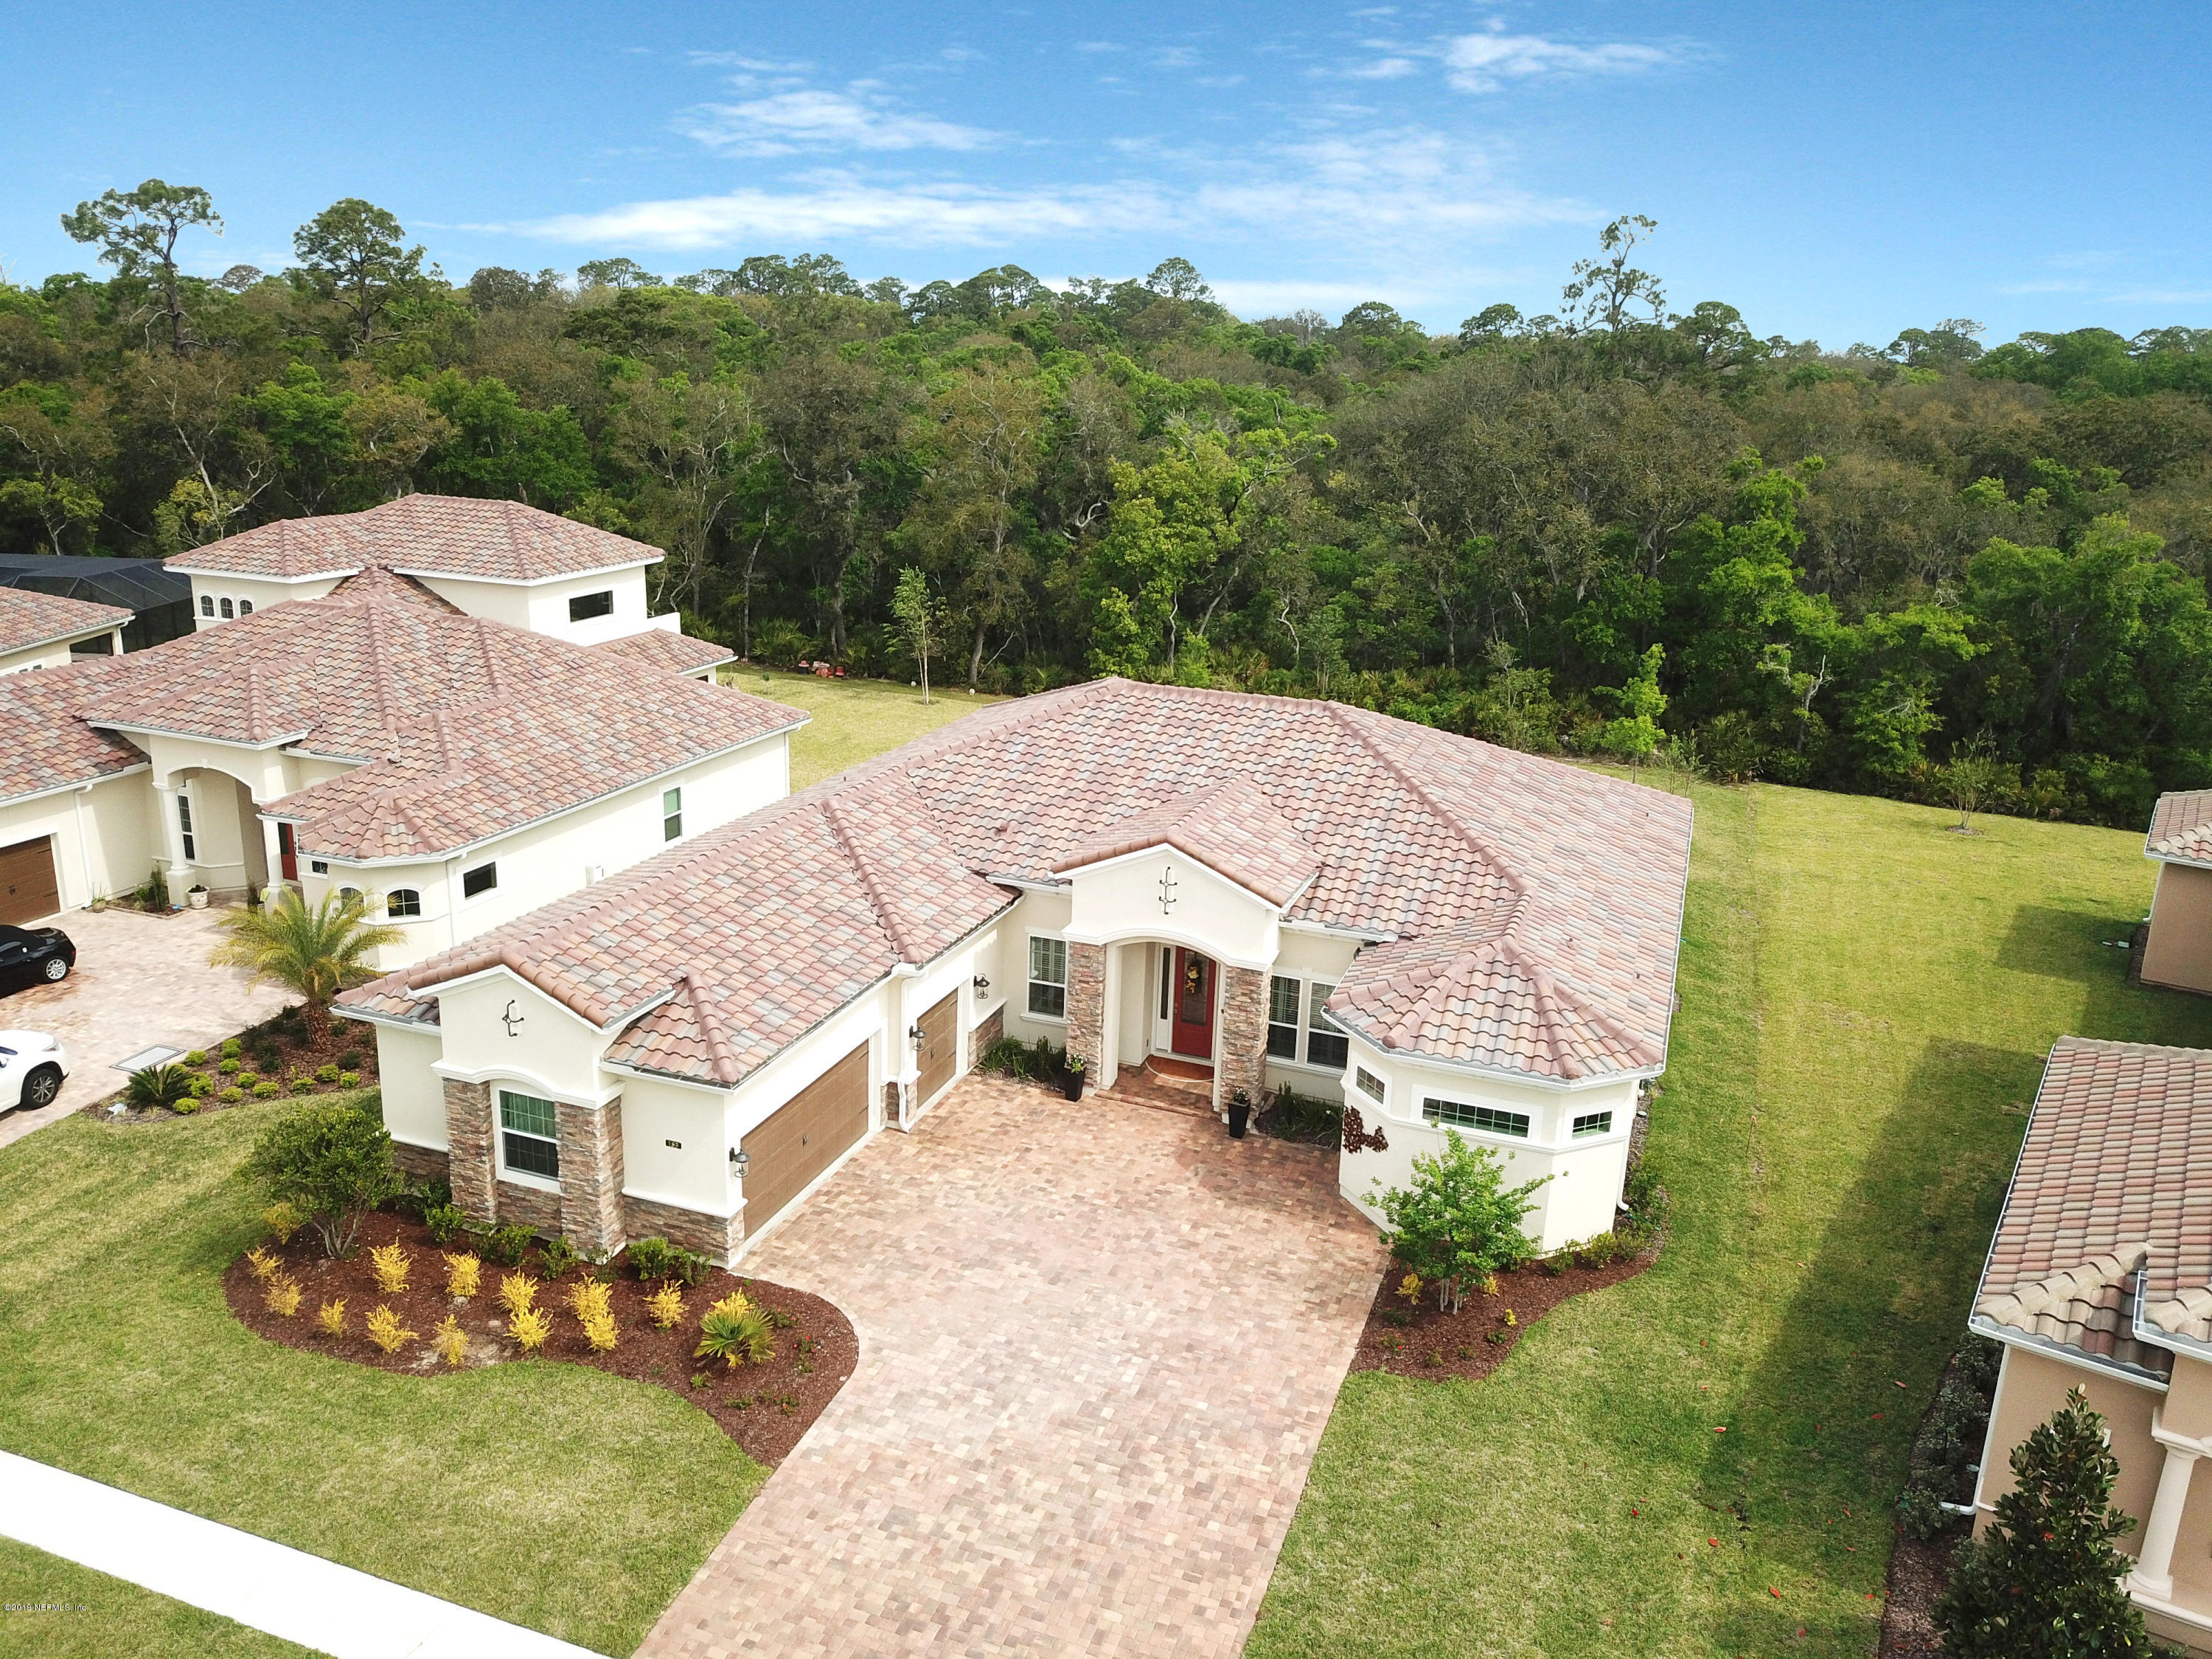 185 BARBELLA, ST AUGUSTINE, FLORIDA 32095, 4 Bedrooms Bedrooms, ,3 BathroomsBathrooms,Residential - single family,For sale,BARBELLA,989834